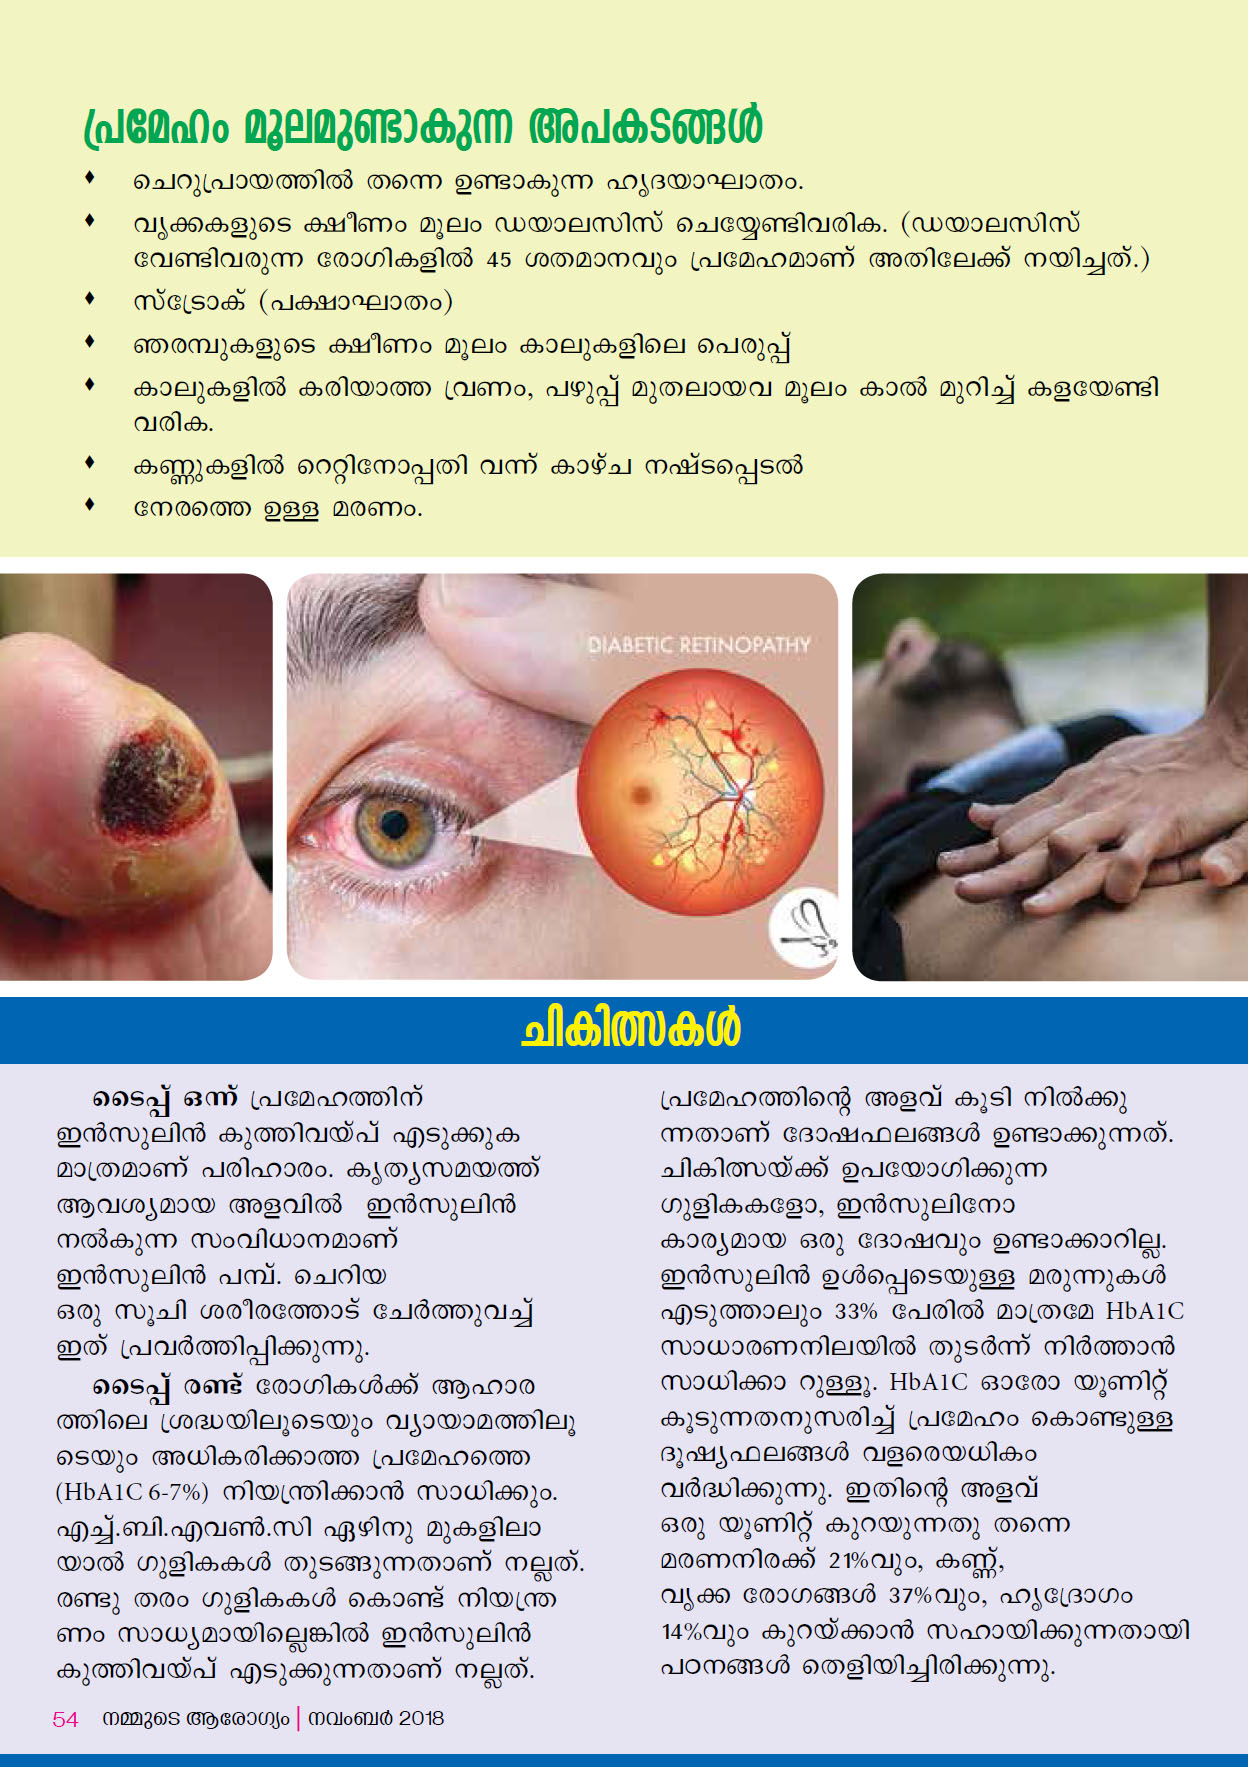 Keyhole Surgery for Diabetes by Dr R Padmakumar  Page 3